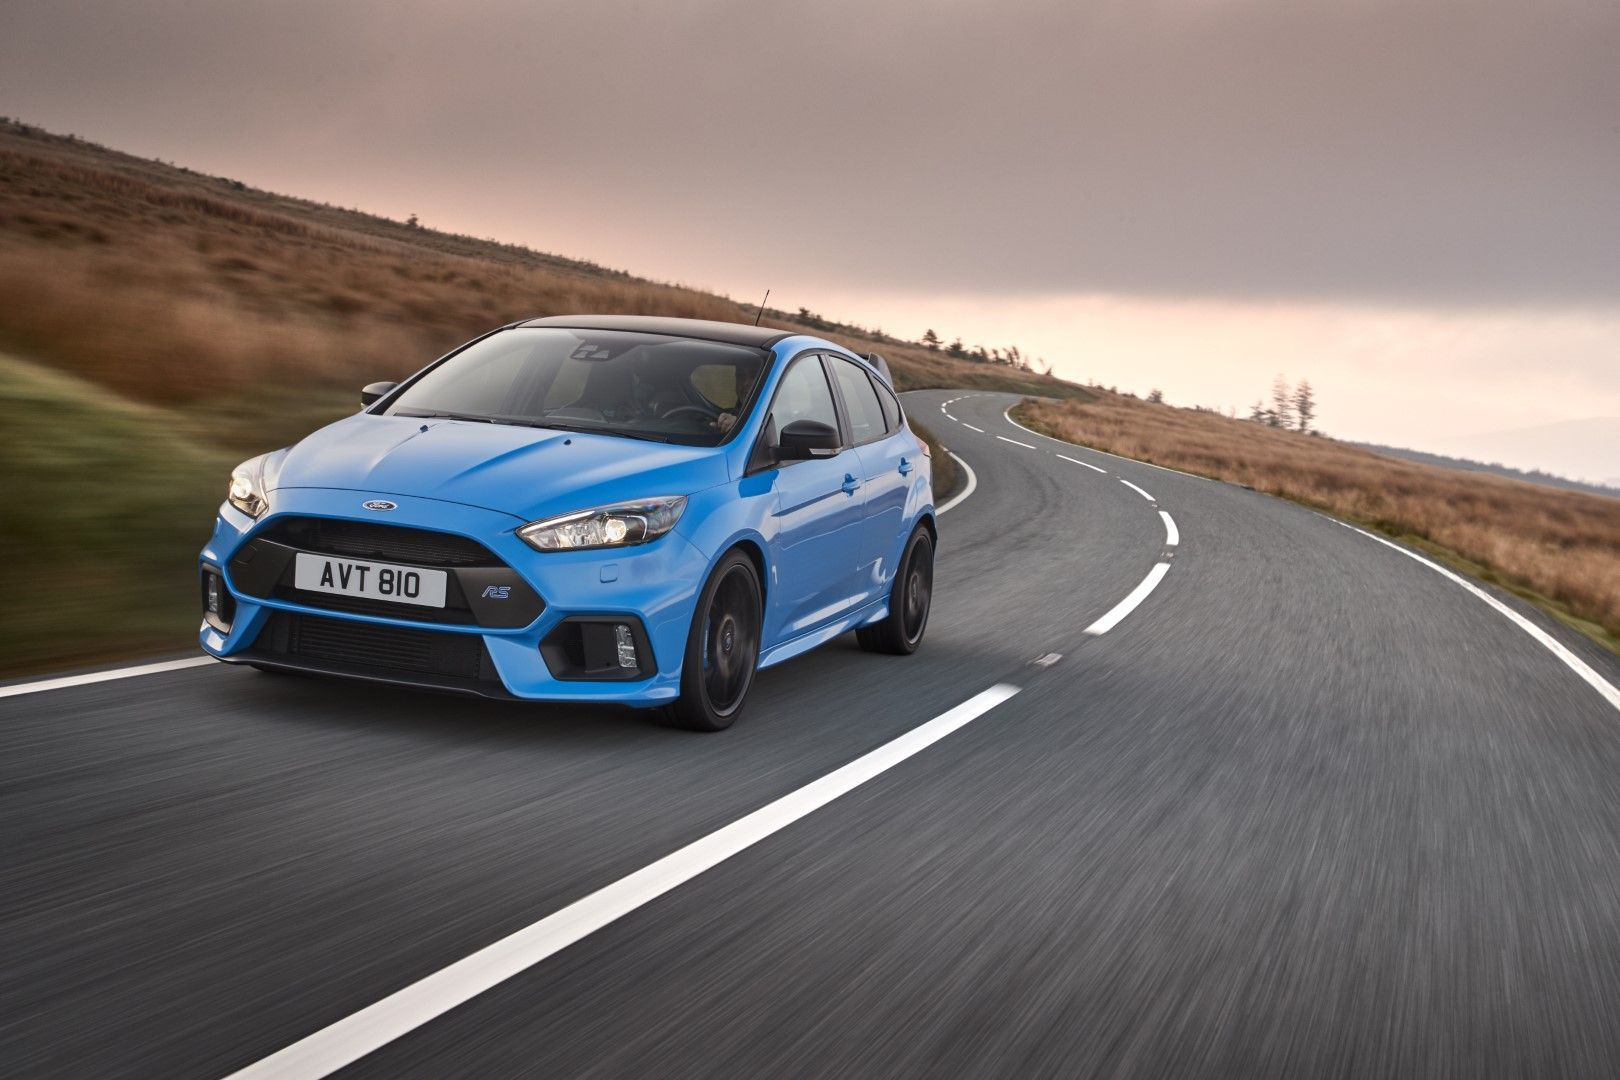 2018 Ford Focus Rs Option Pack Non North American Focus Rs Only